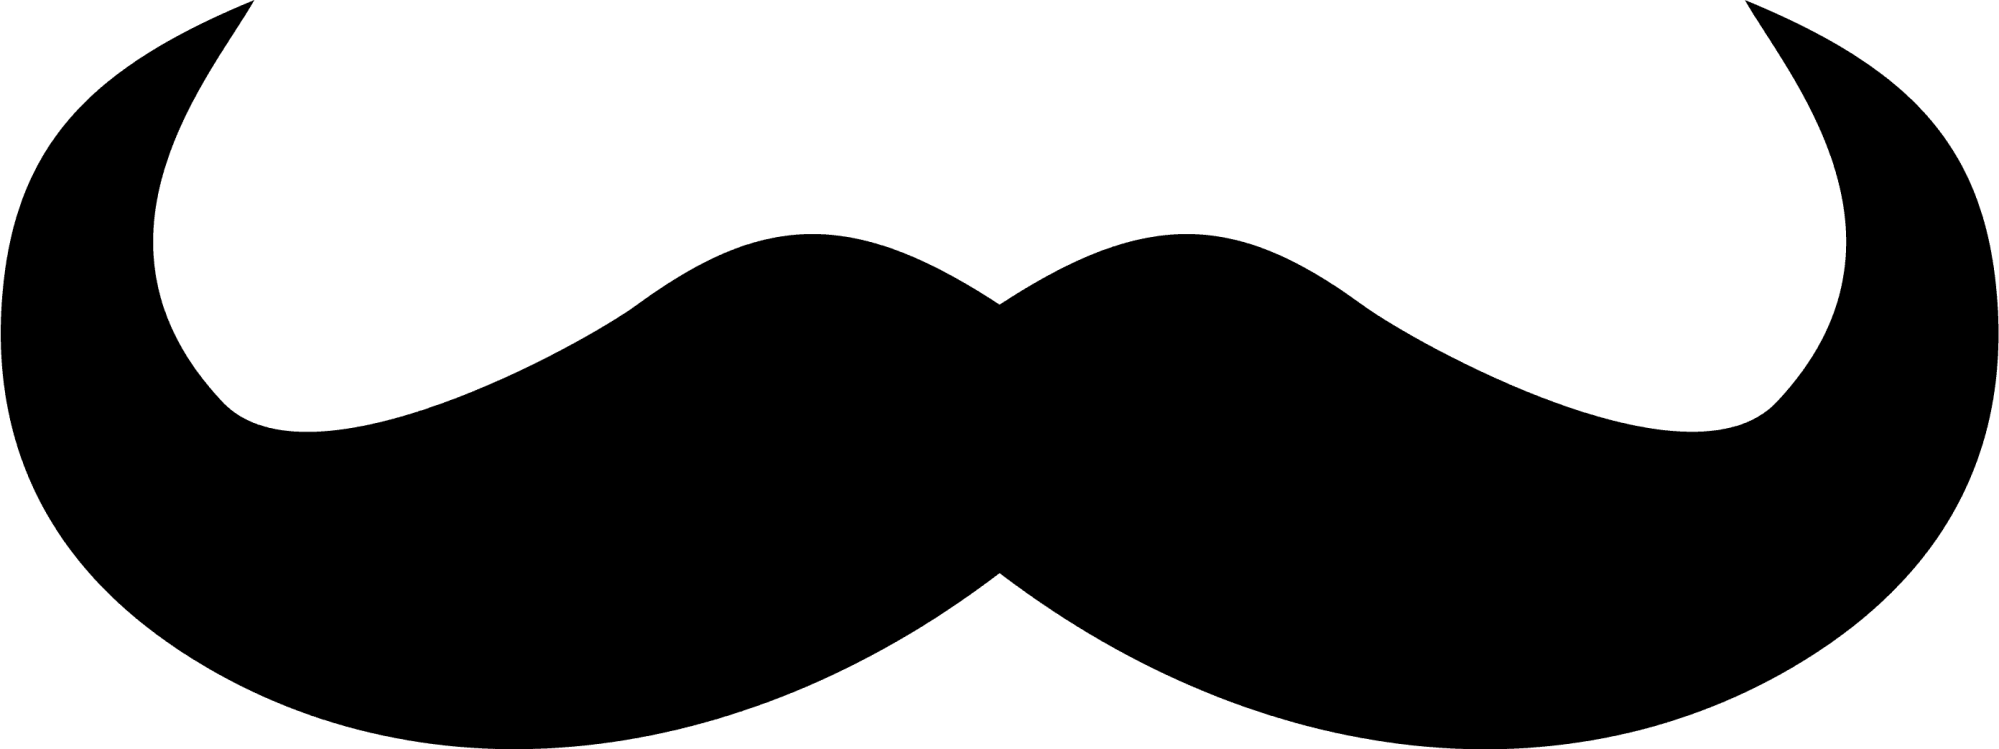 hight resolution of mustache clipart french